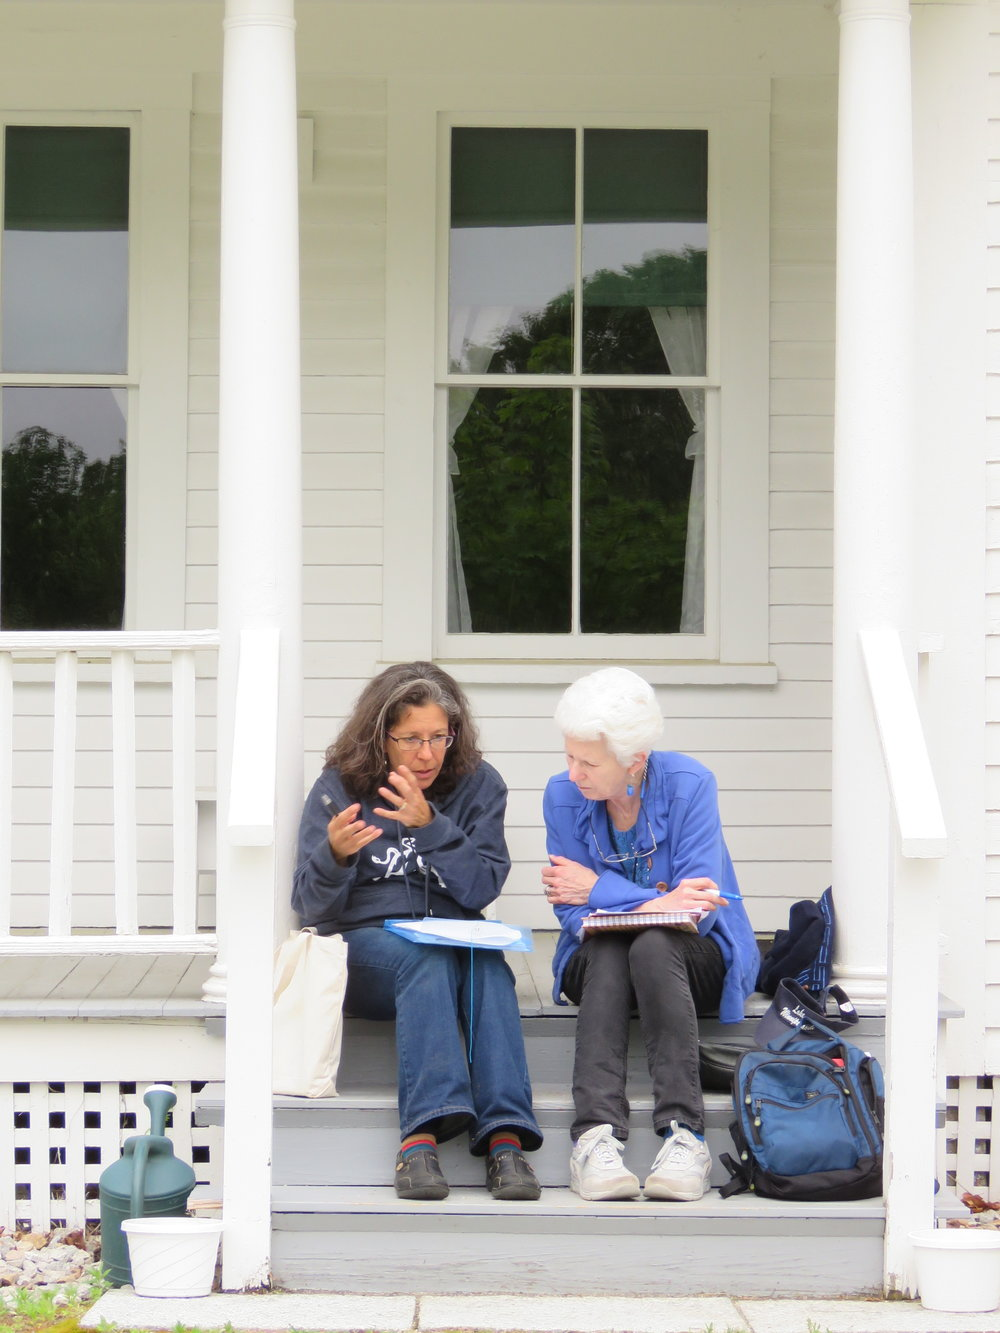 Midge Goldberg Meets with a Student on Frost's Porch